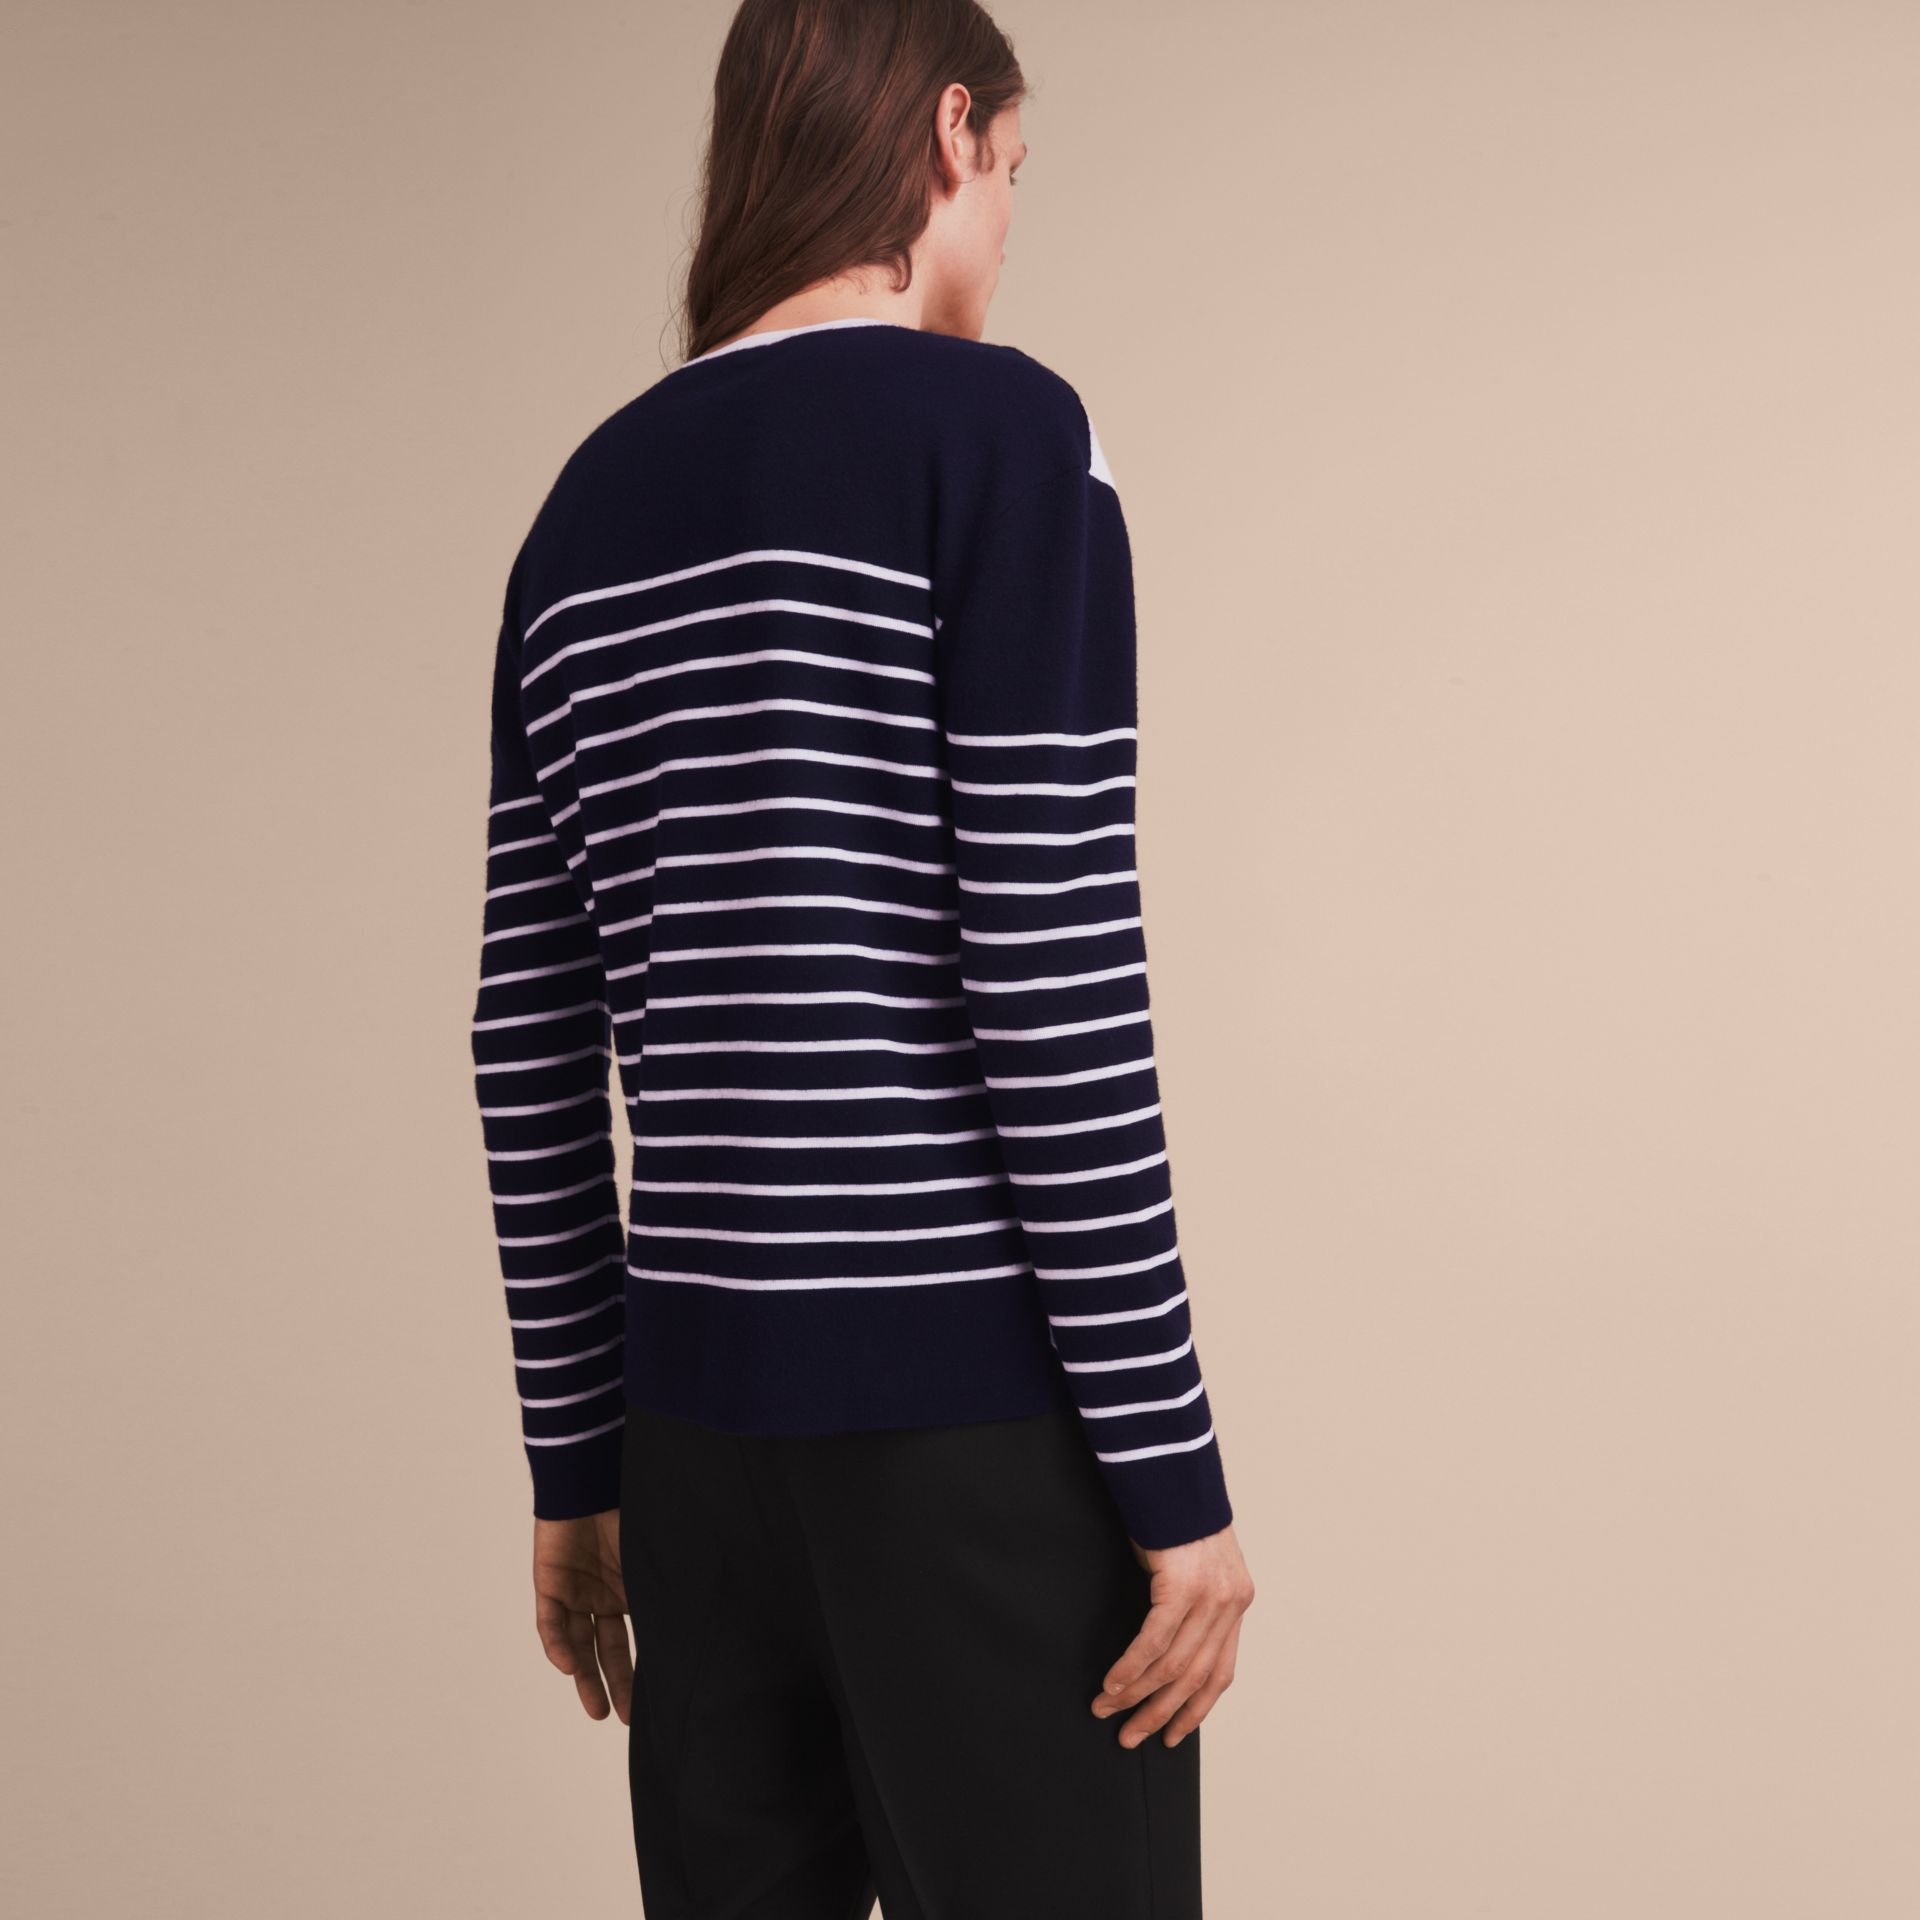 Contrast Stripe Cashmere Blend Sweater - Men | Burberry - gallery image 3